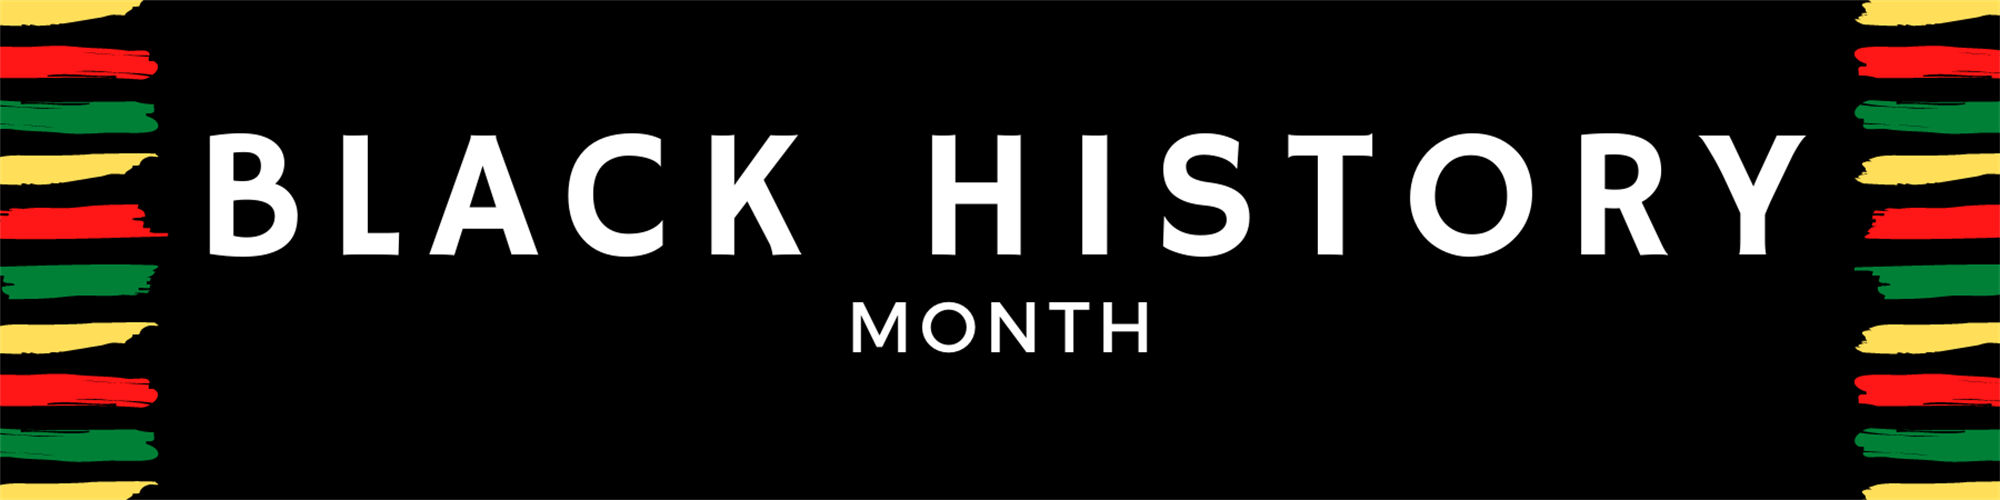 Find out more about Black History Month